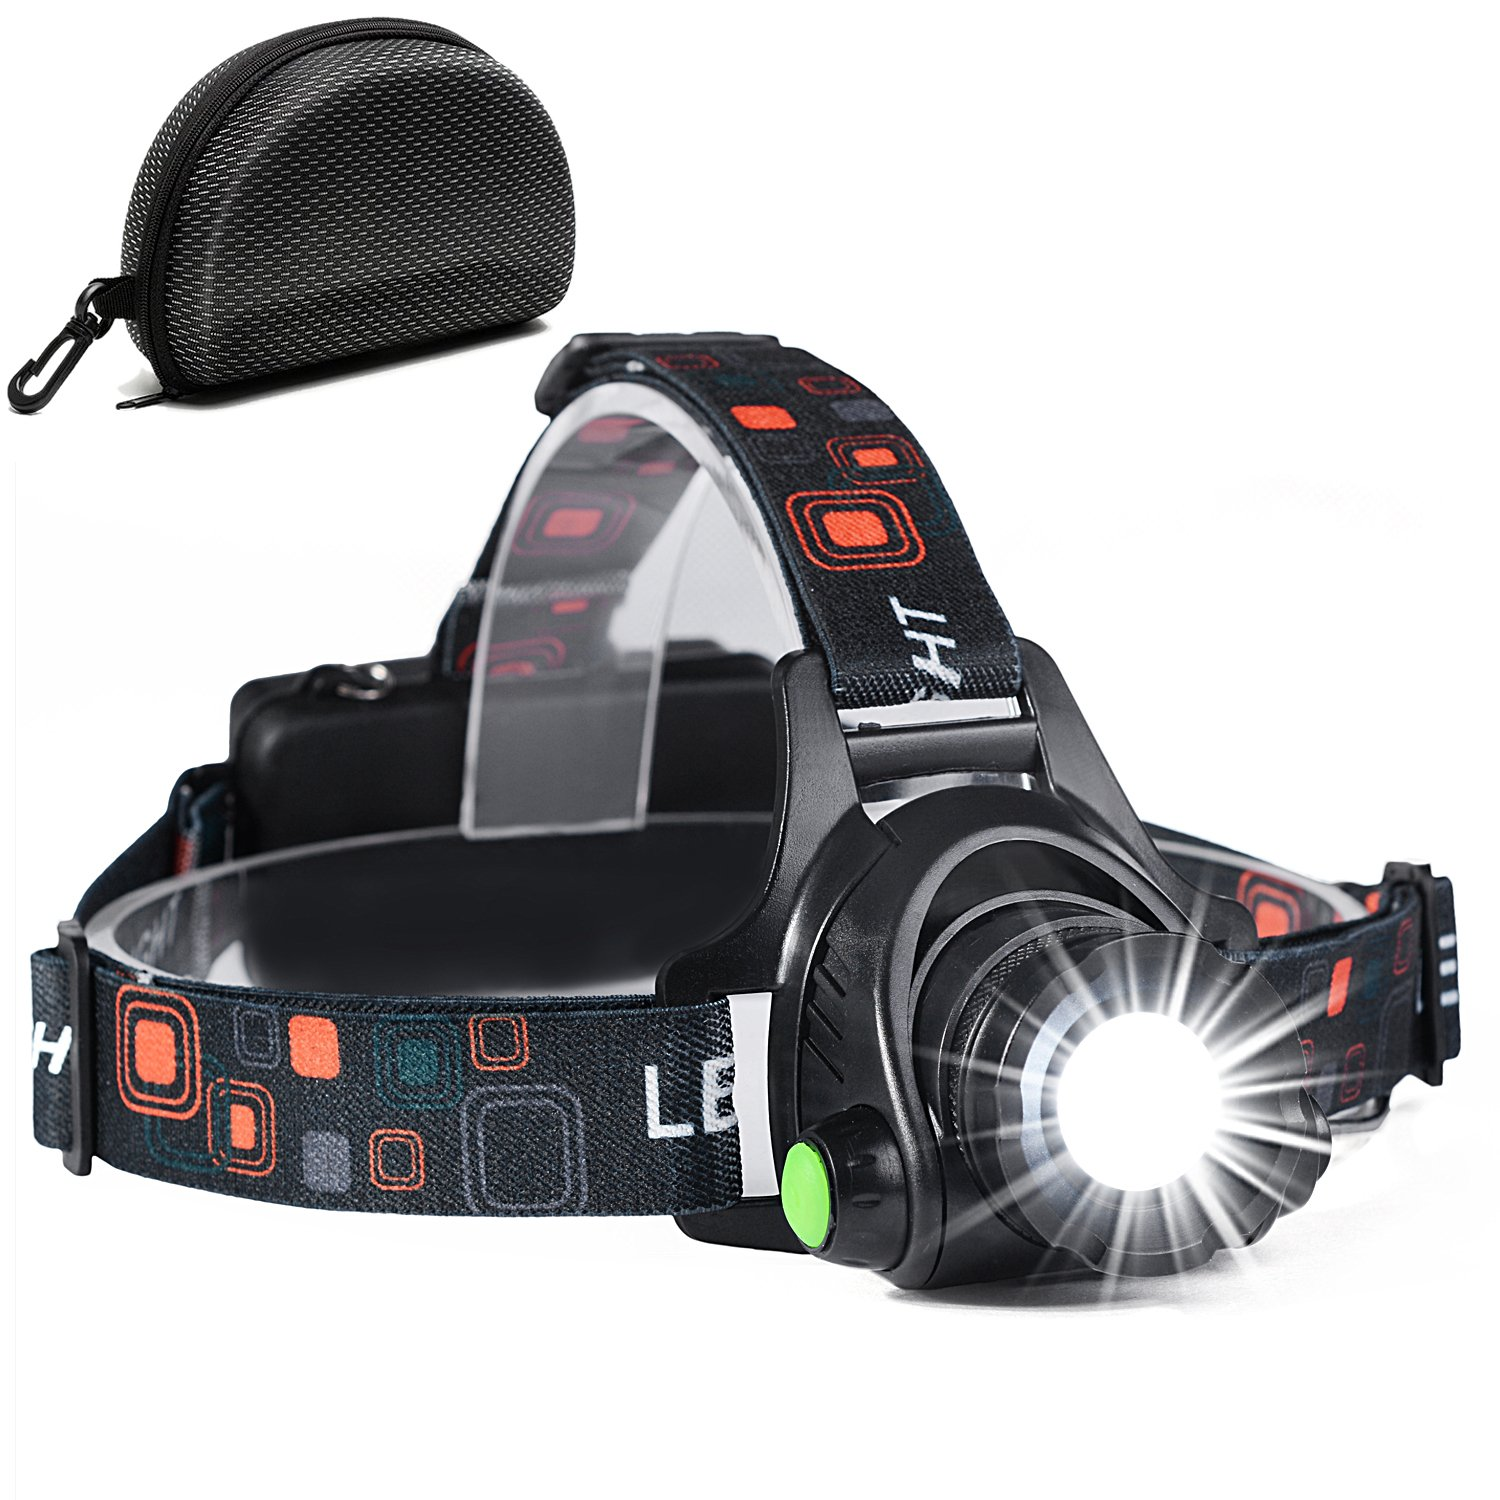 NEWEST Ultra Bright Headlamp Flashlight,3 Modes 6000 High Lumen IPX4 Waterproof Zoomable with18650 Rechargeable Batteries,Cree Led Head Light for Hiking Camping Hunting